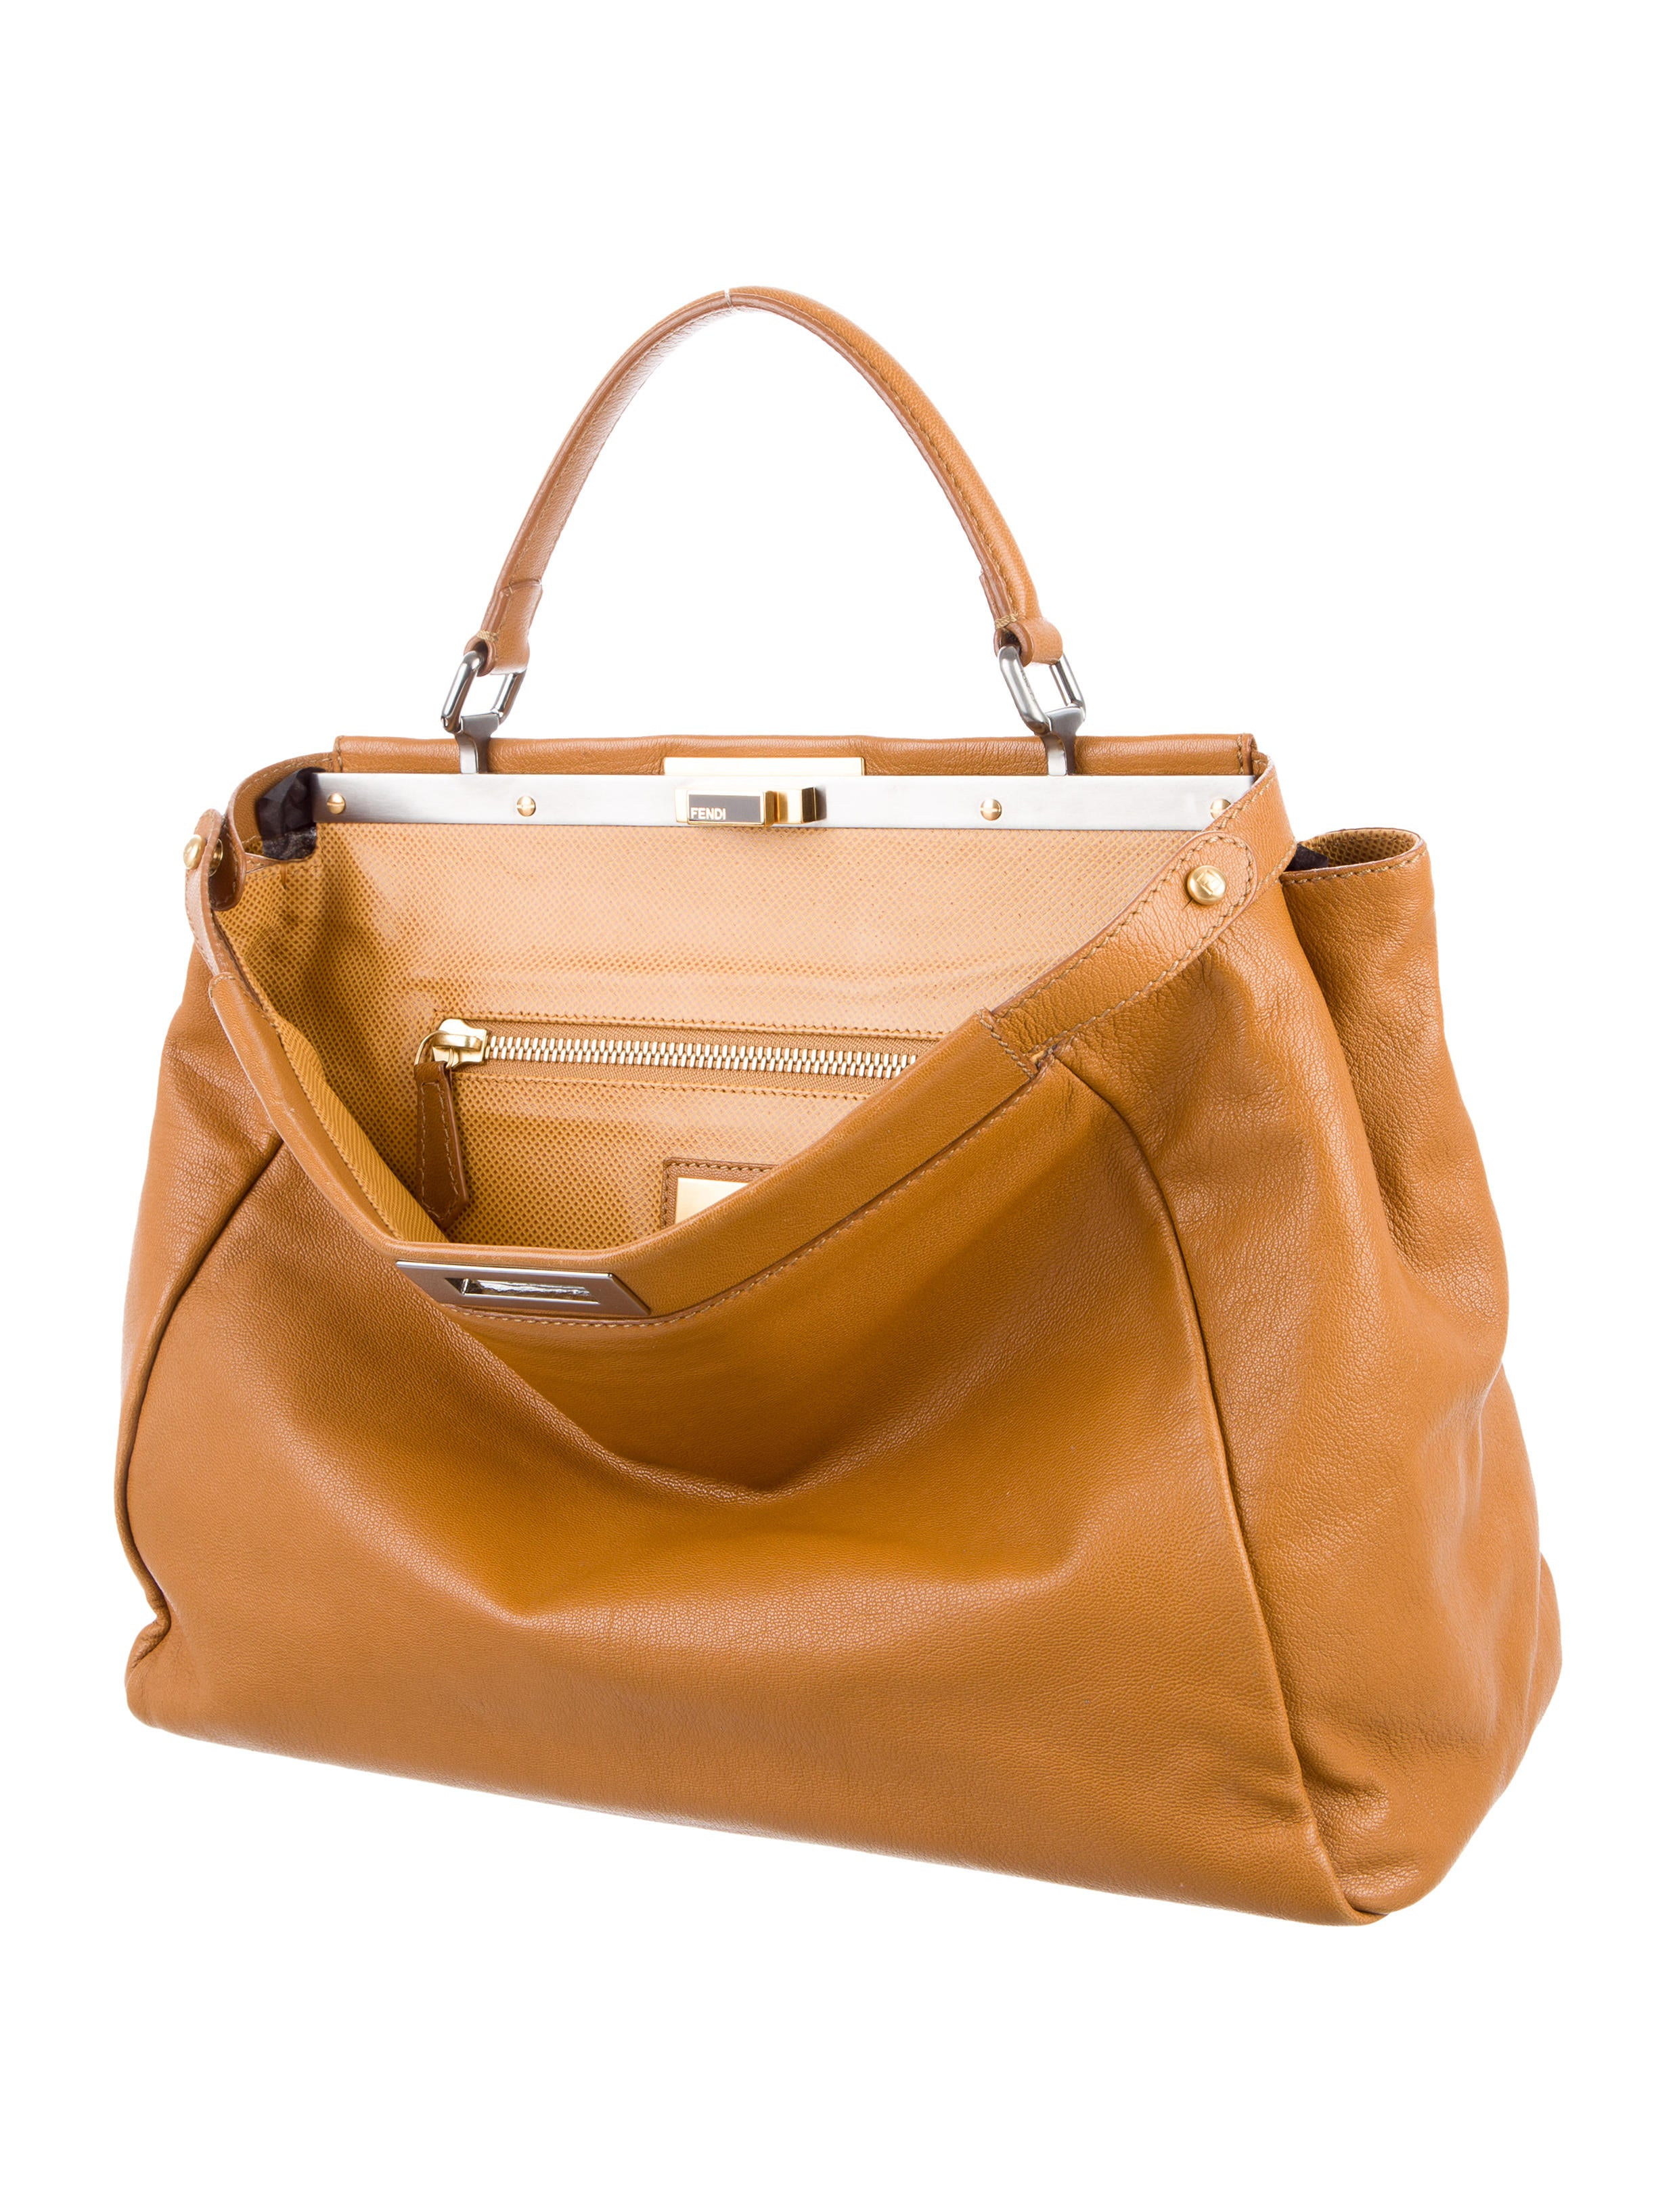 e25b64805 Fendi Large Tote Sale | Stanford Center for Opportunity Policy in ...